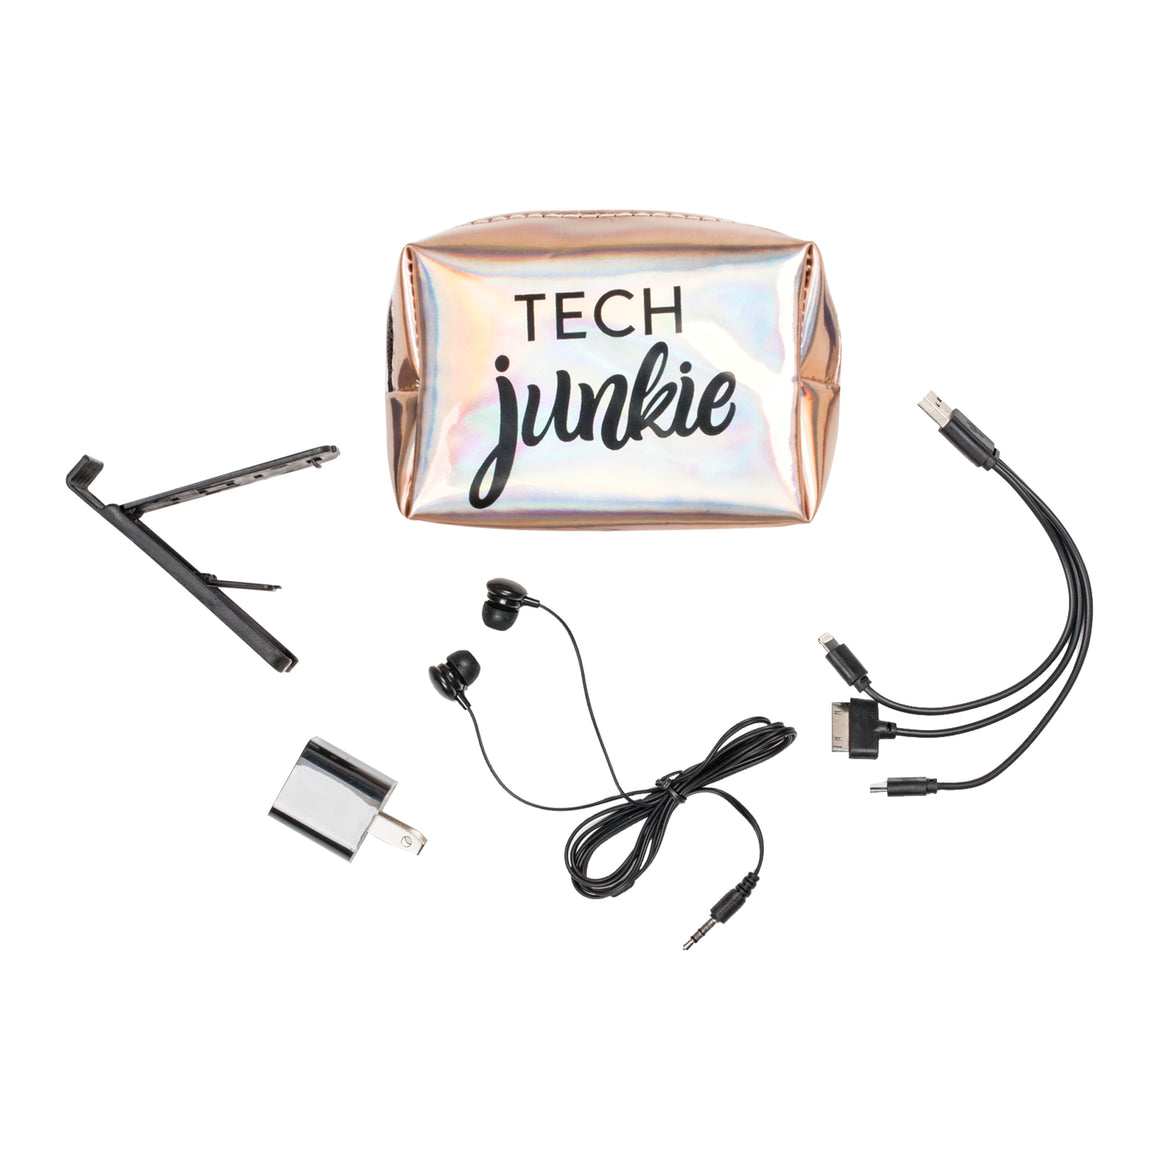 Tech Junkie Kit